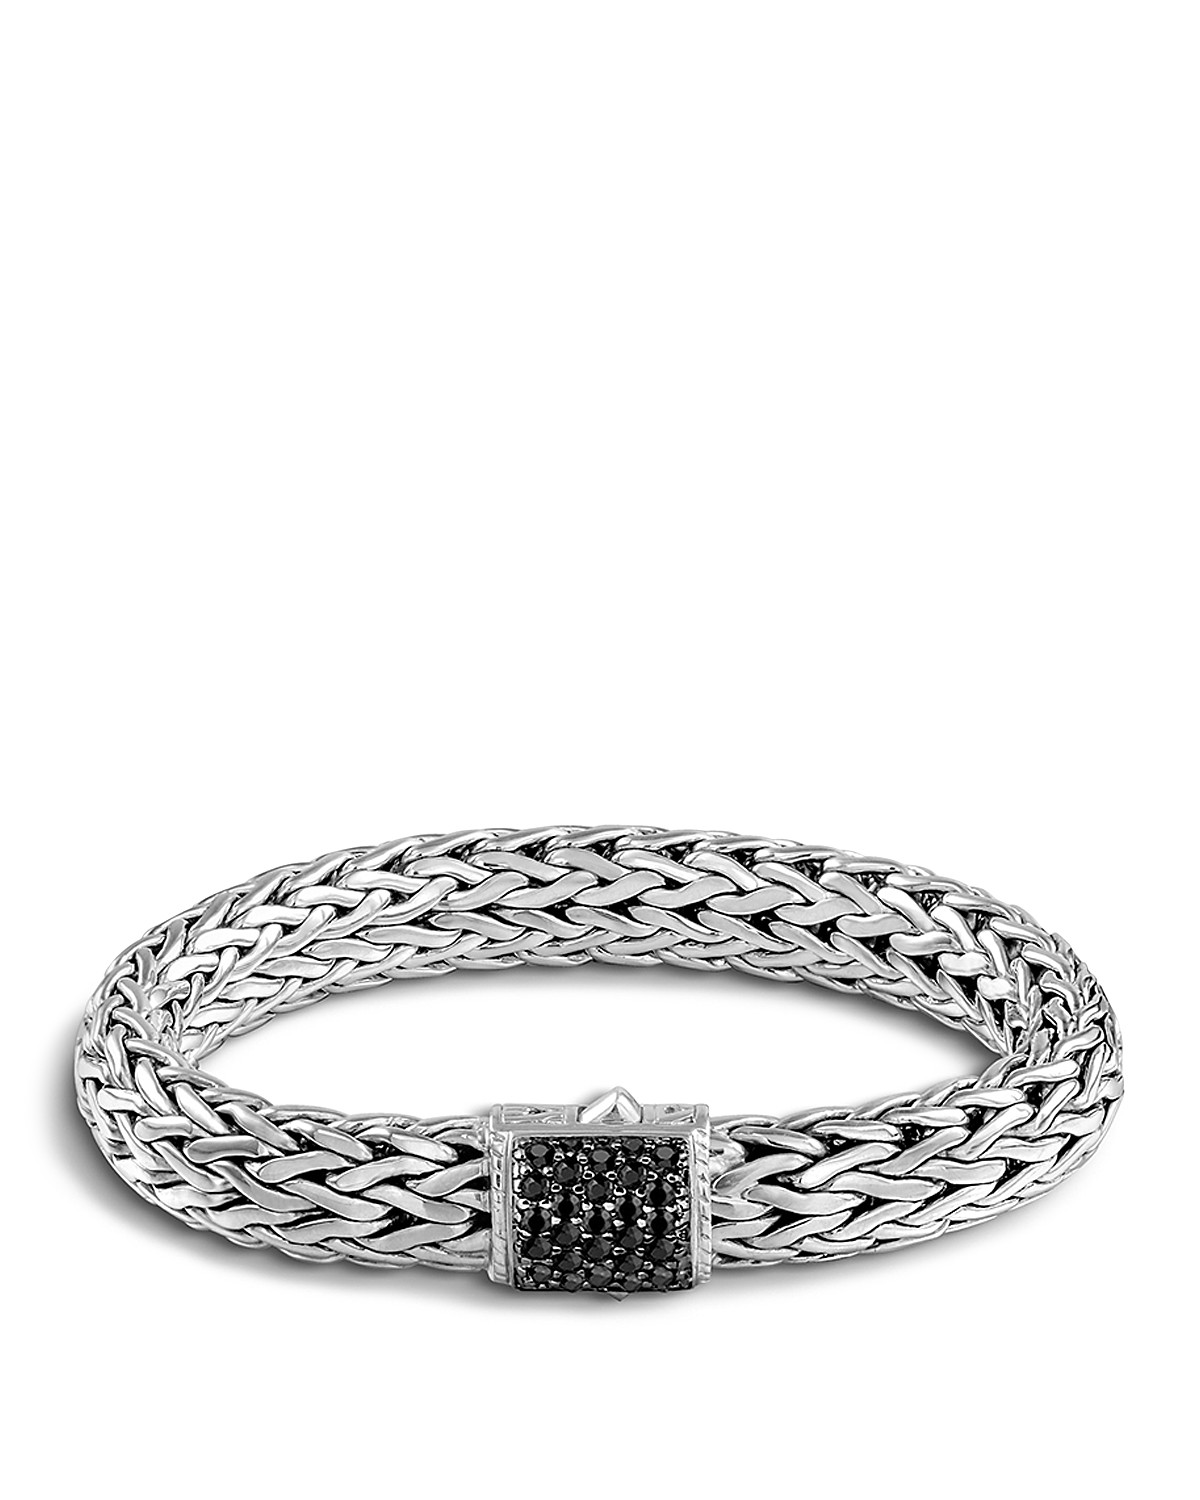 silver bracelets best bangles large bangle